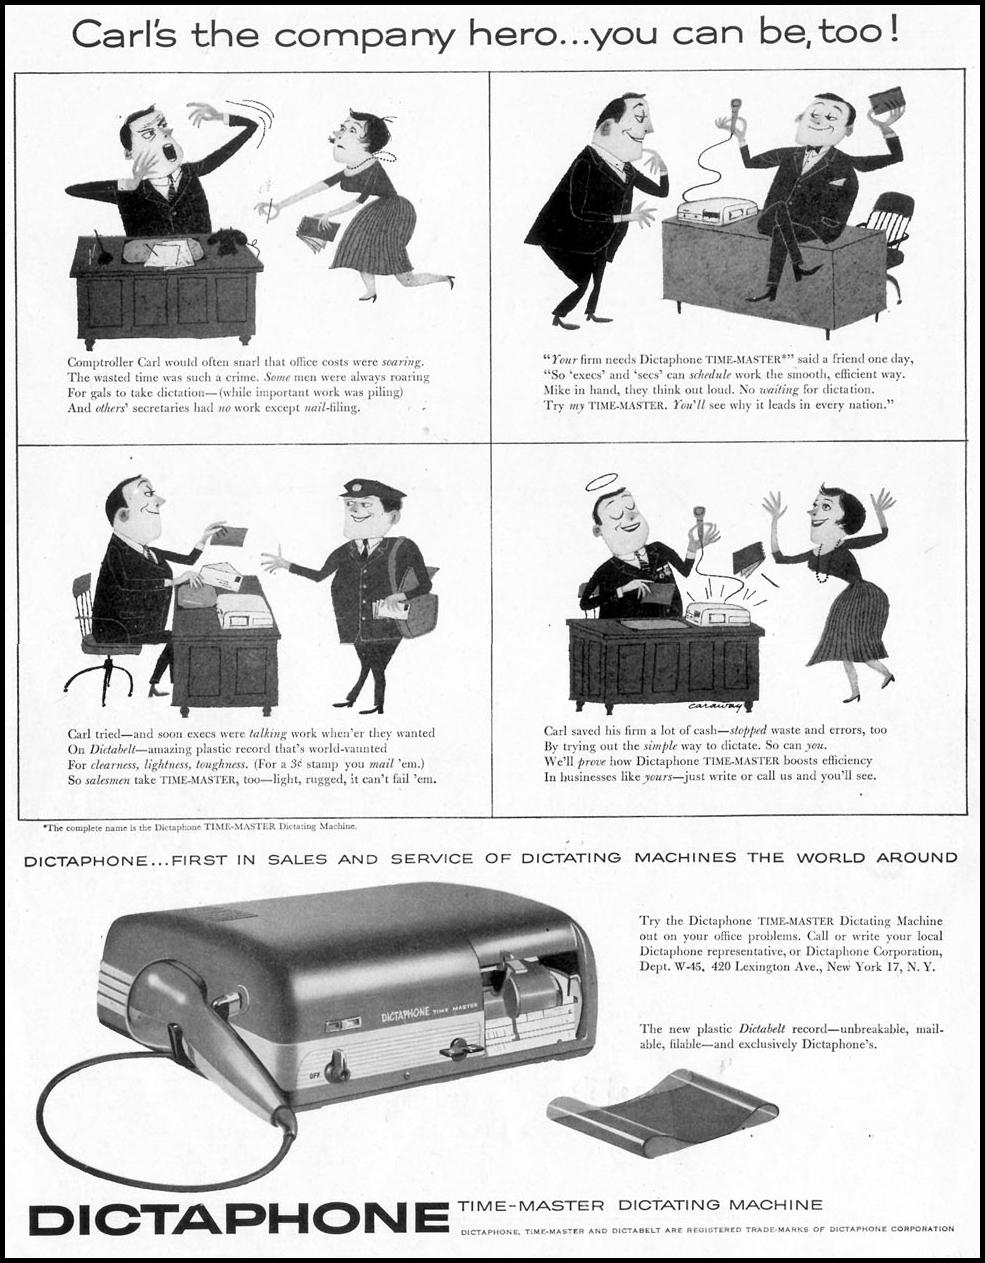 DICTAPHONE DICTATING MACHINE SATURDAY EVENING POST 04/09/1955 p. 82